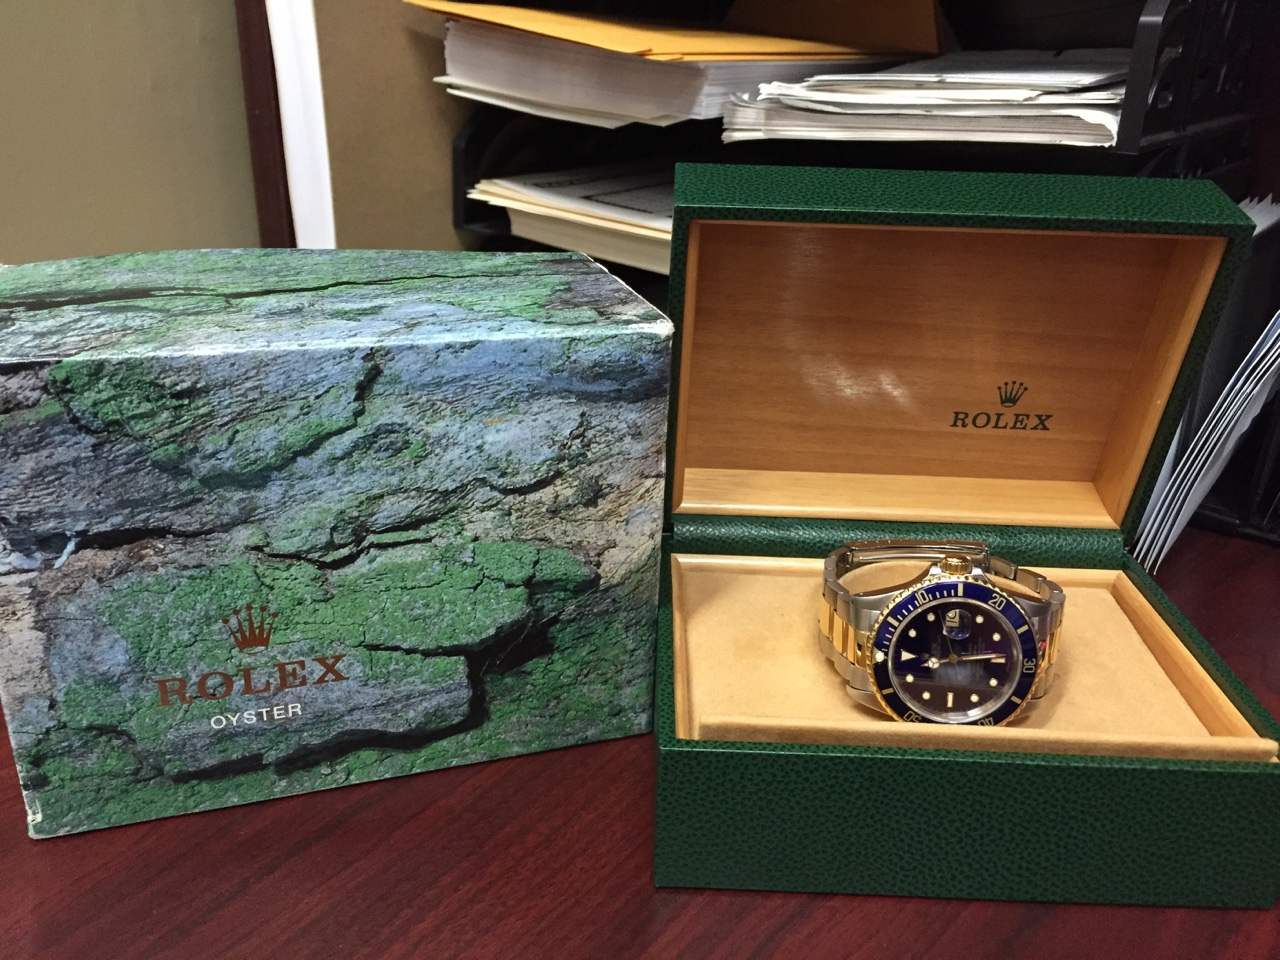 Rolex Two-Tone Submariner w/ Box - $6,500